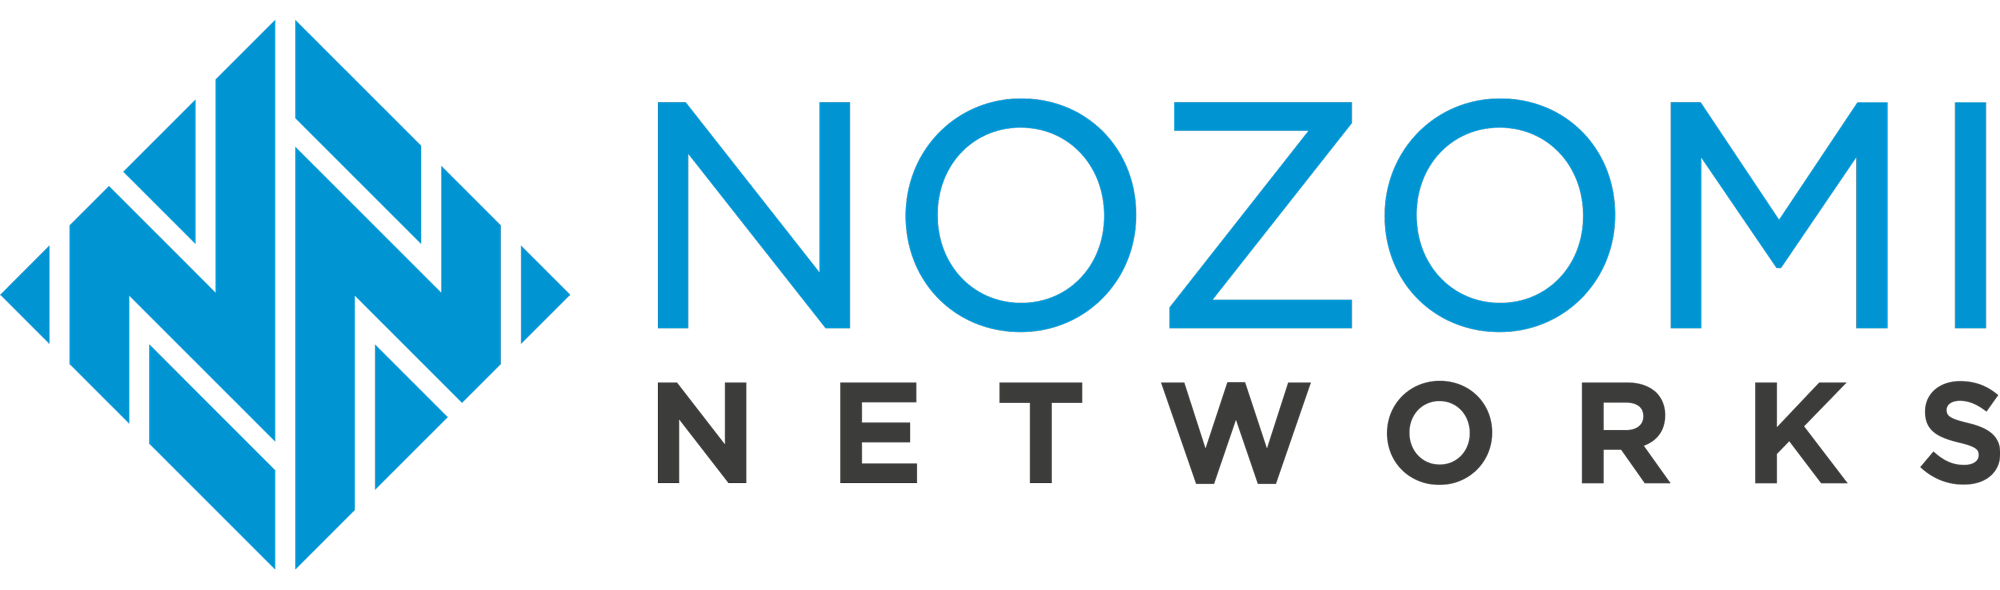 leading ICS cybersecurity firm Nozomi Networks